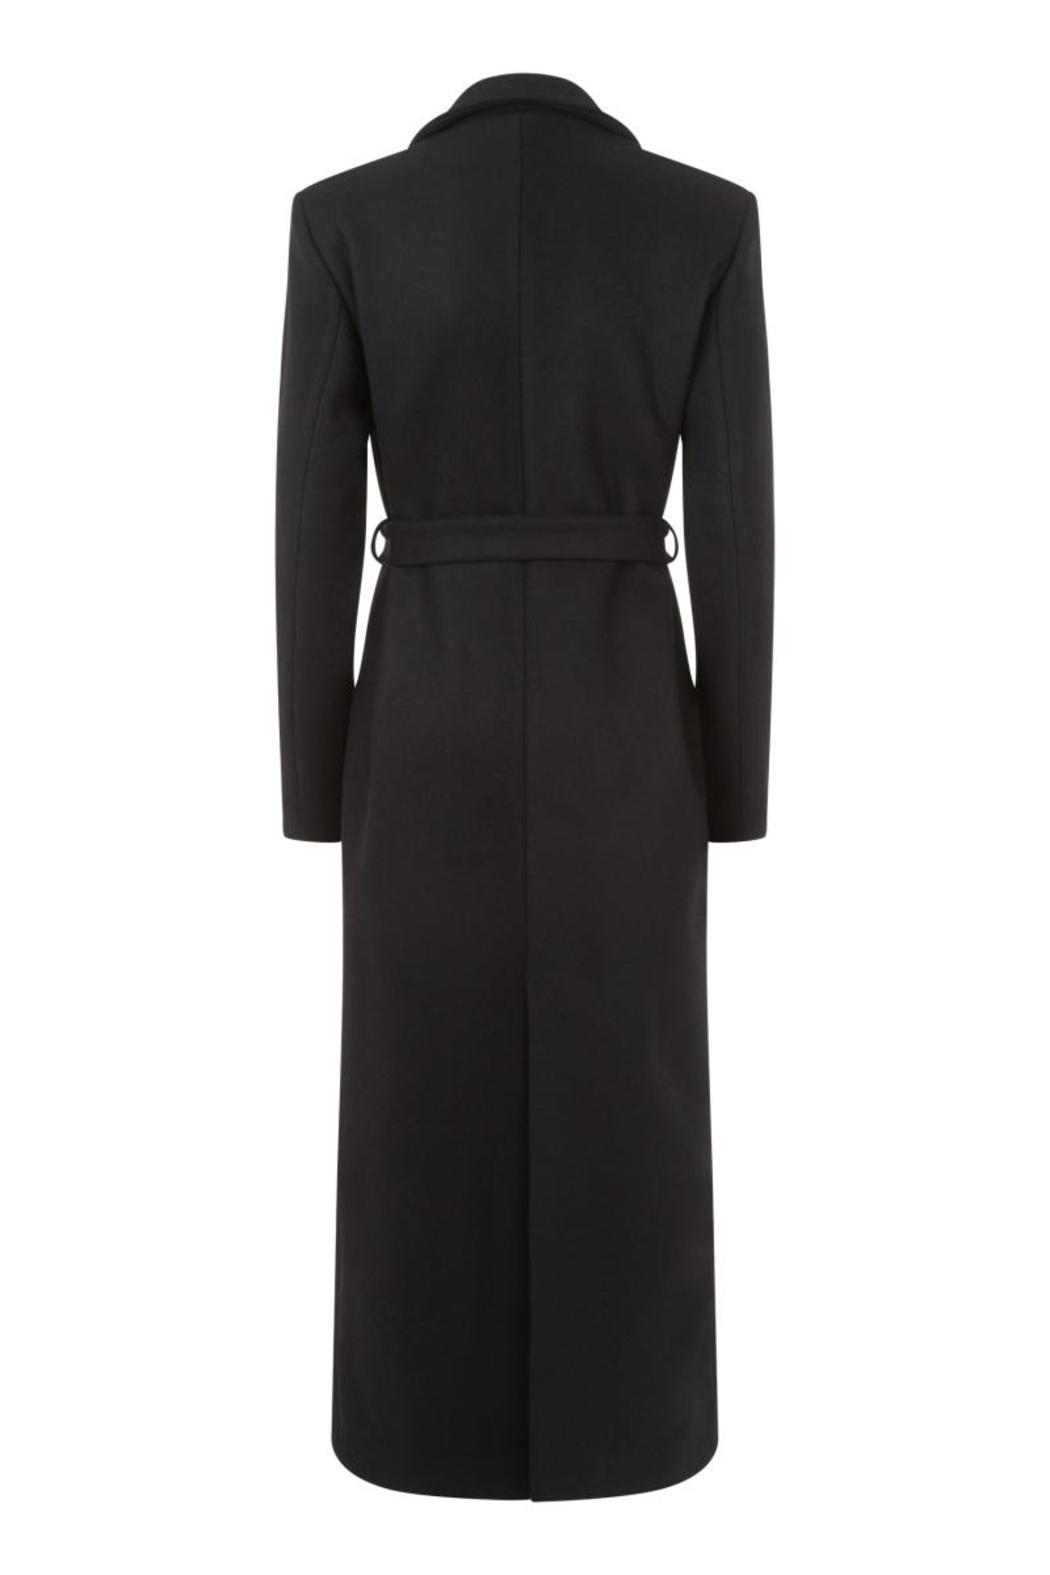 Charlie May Wool Duster Coat - Back Cropped Image